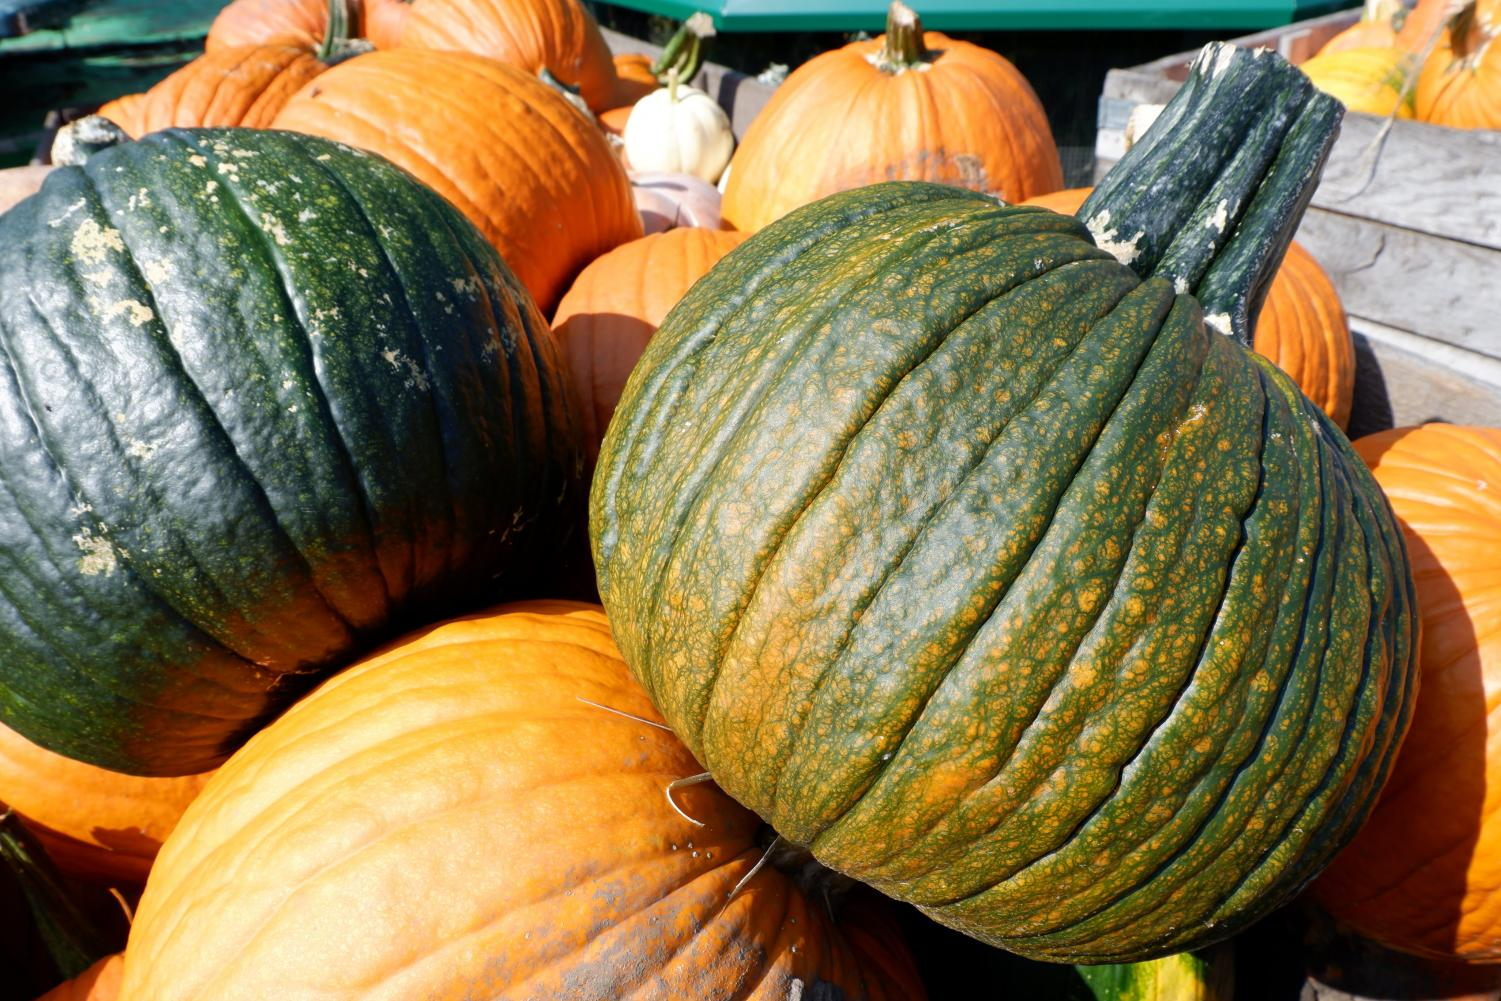 Illinois saw a record-breaking pumpkin yield ahead of fall festivals this year due to ideal weather prolonging the growing season.